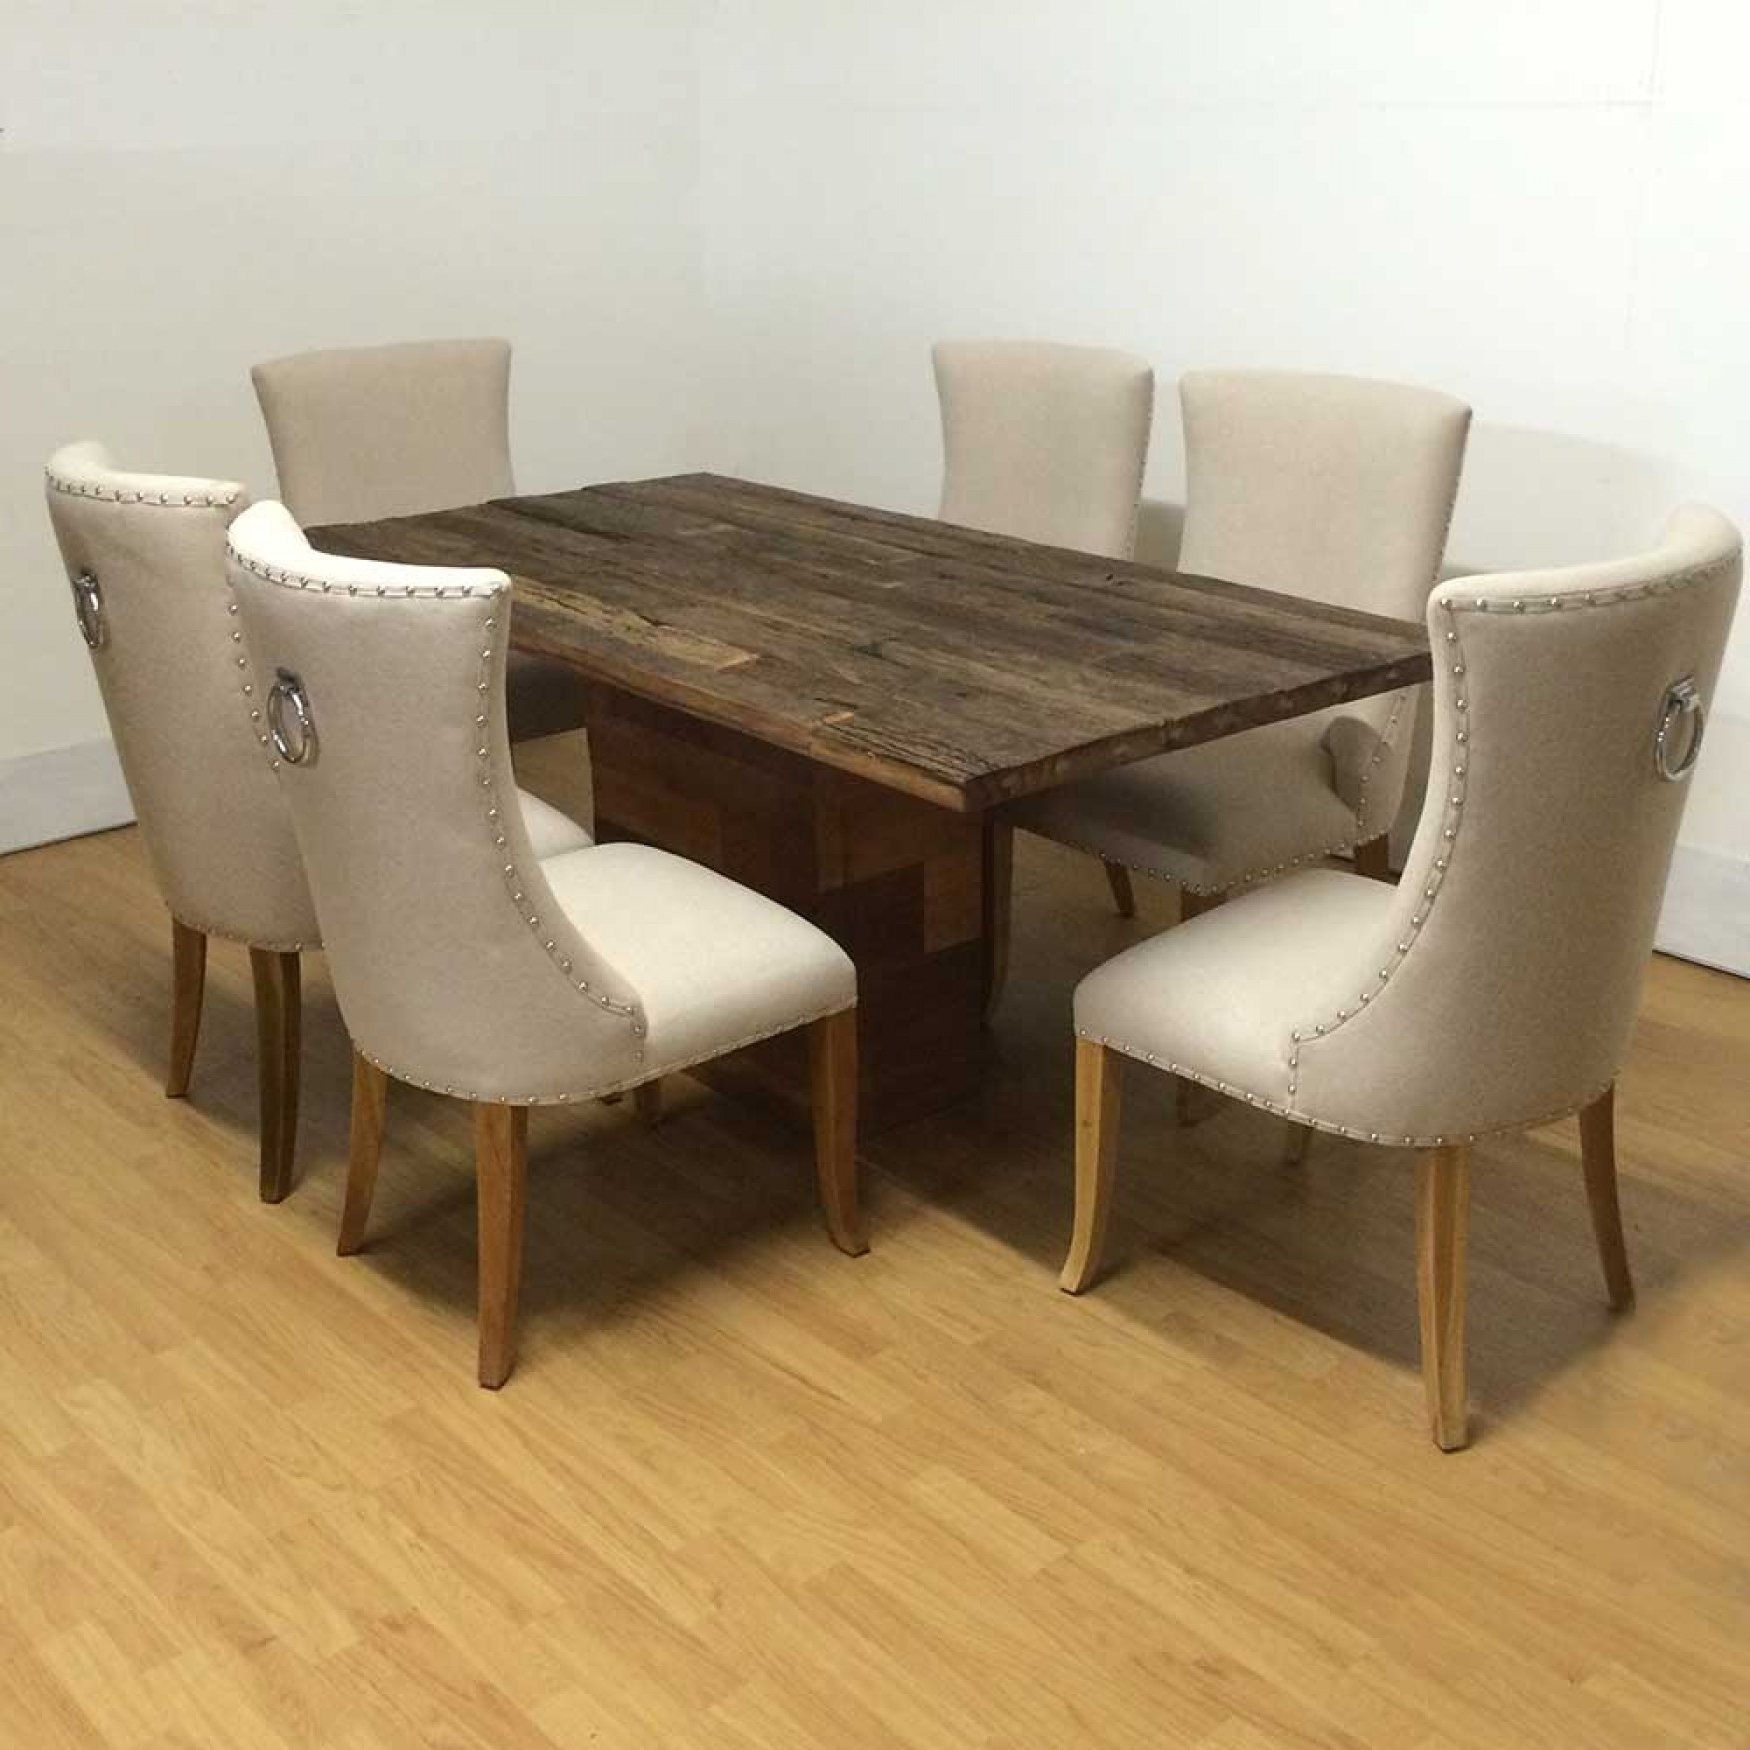 Most Popular Reclaimed Railway Wood Dining Table Intended For Railway Dining Tables (View 11 of 25)